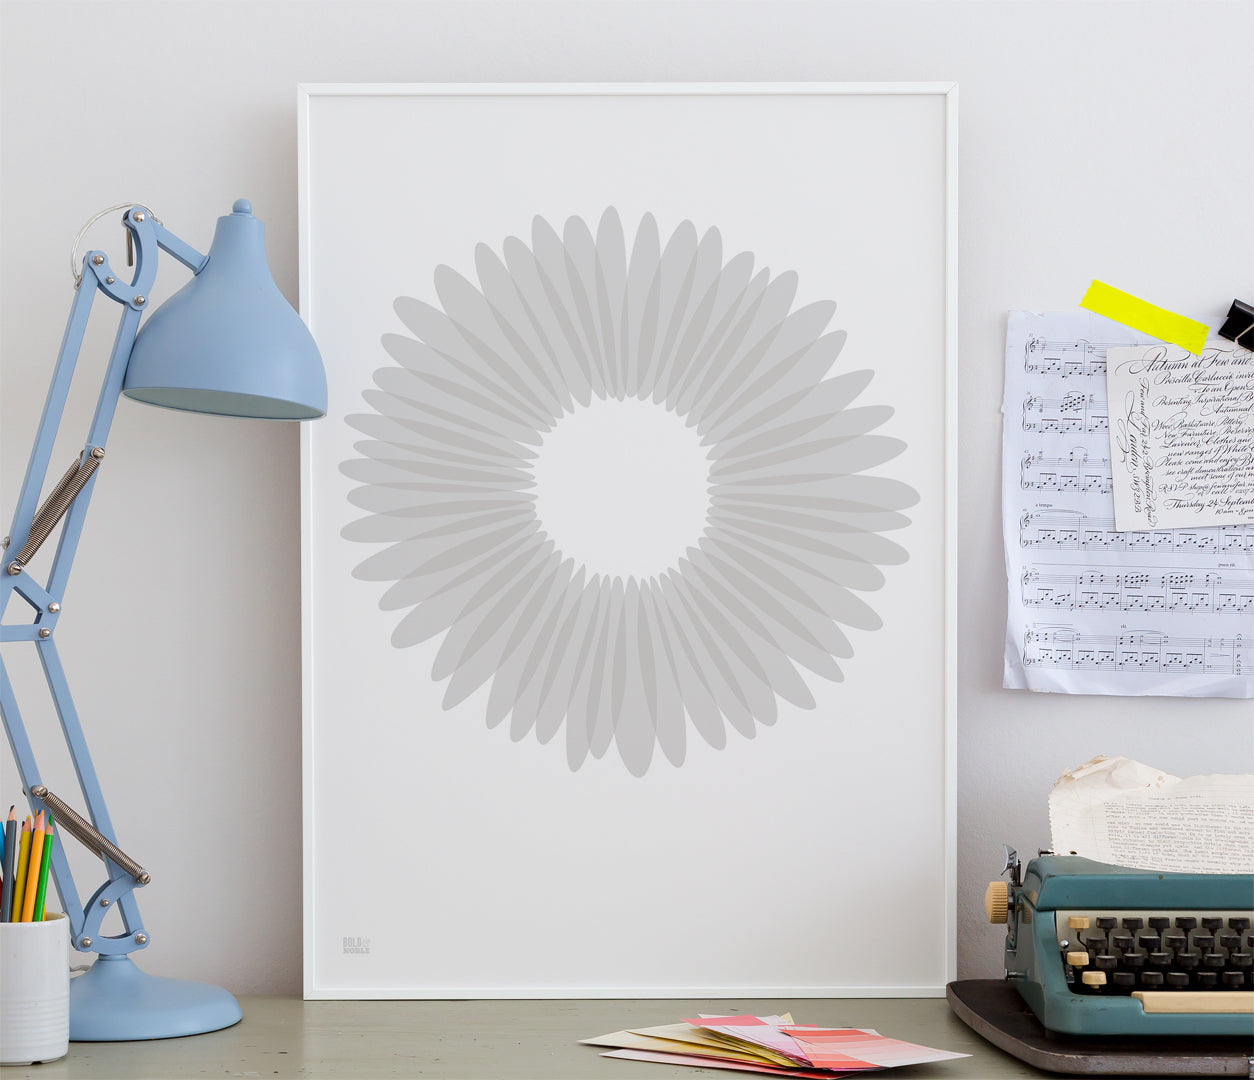 Pictures and Wall Art, Screen Printed Daisy Petals in Chalk Grey